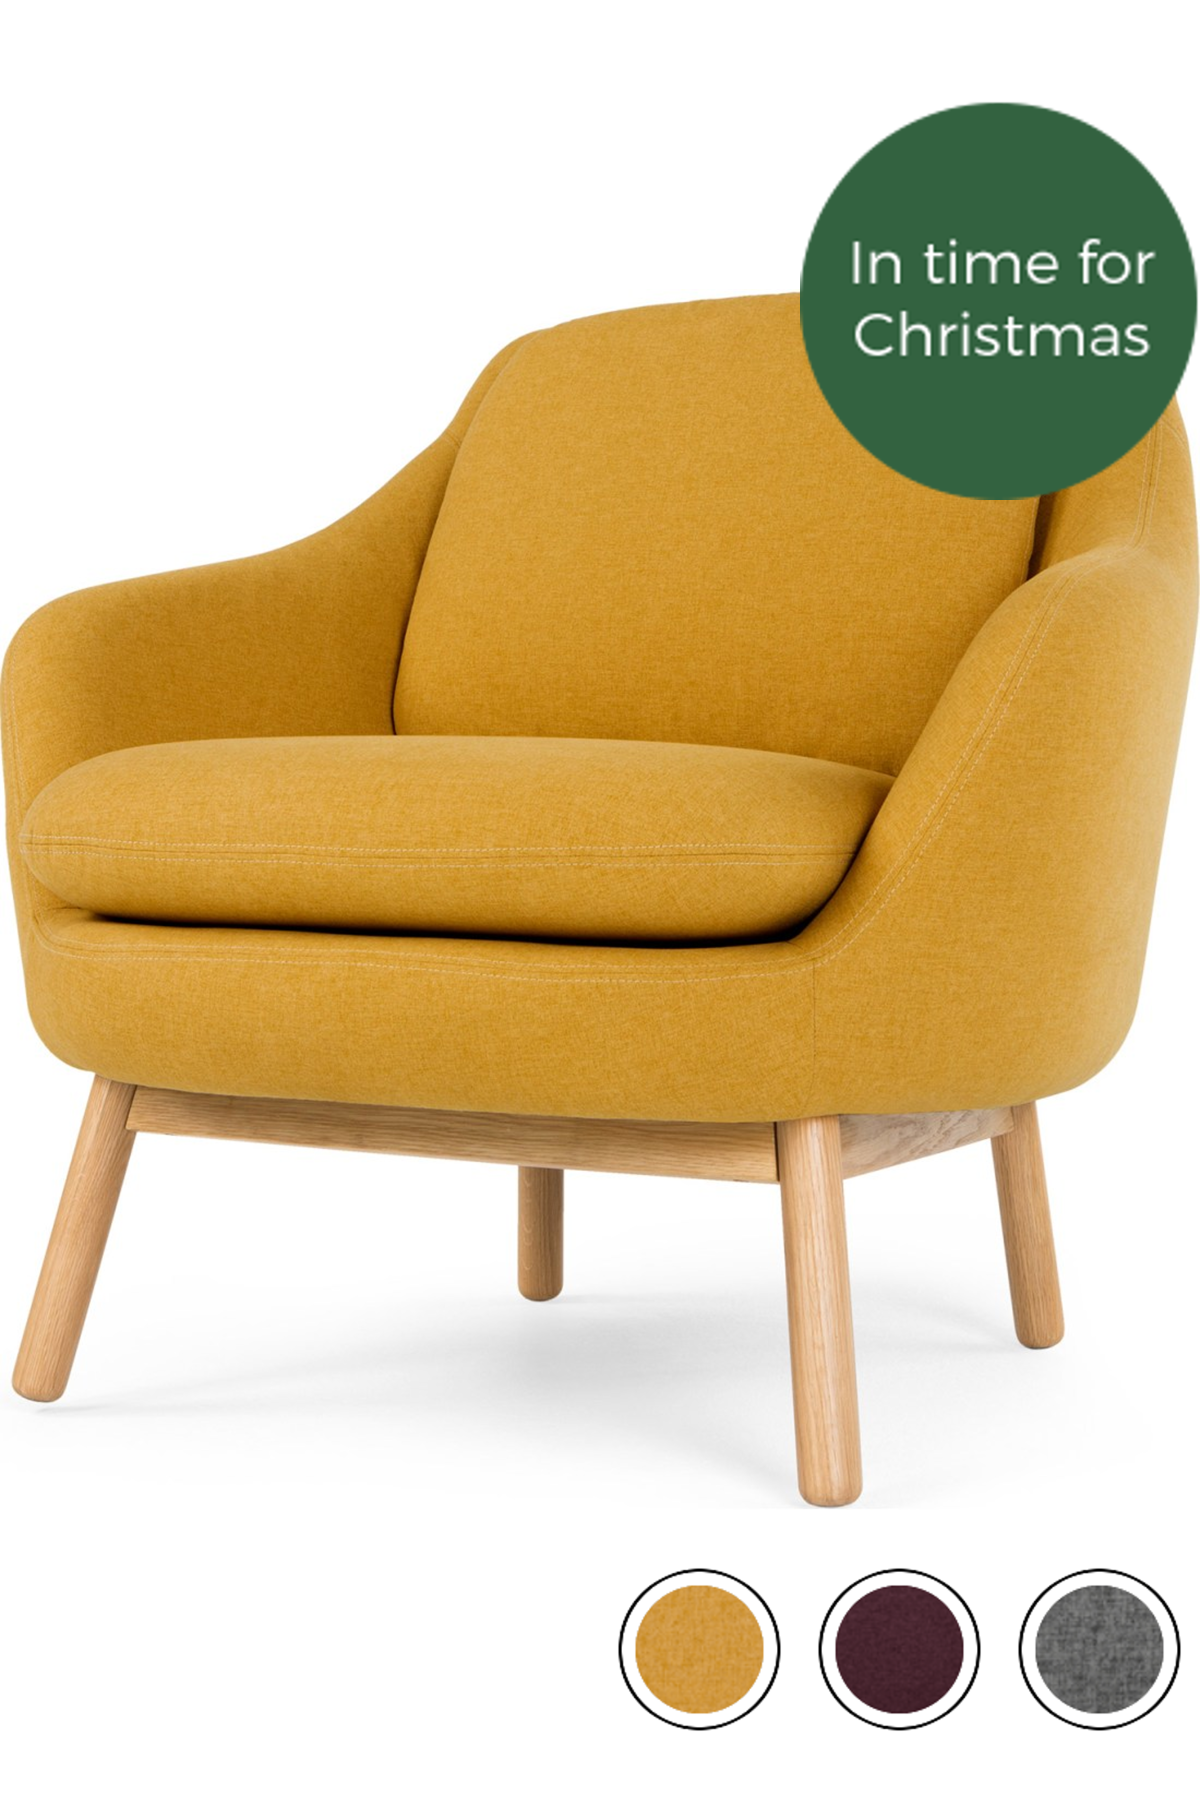 Oslo Accent Chair Yolk Yellow Yellow Armchair Accent Chairs Chair